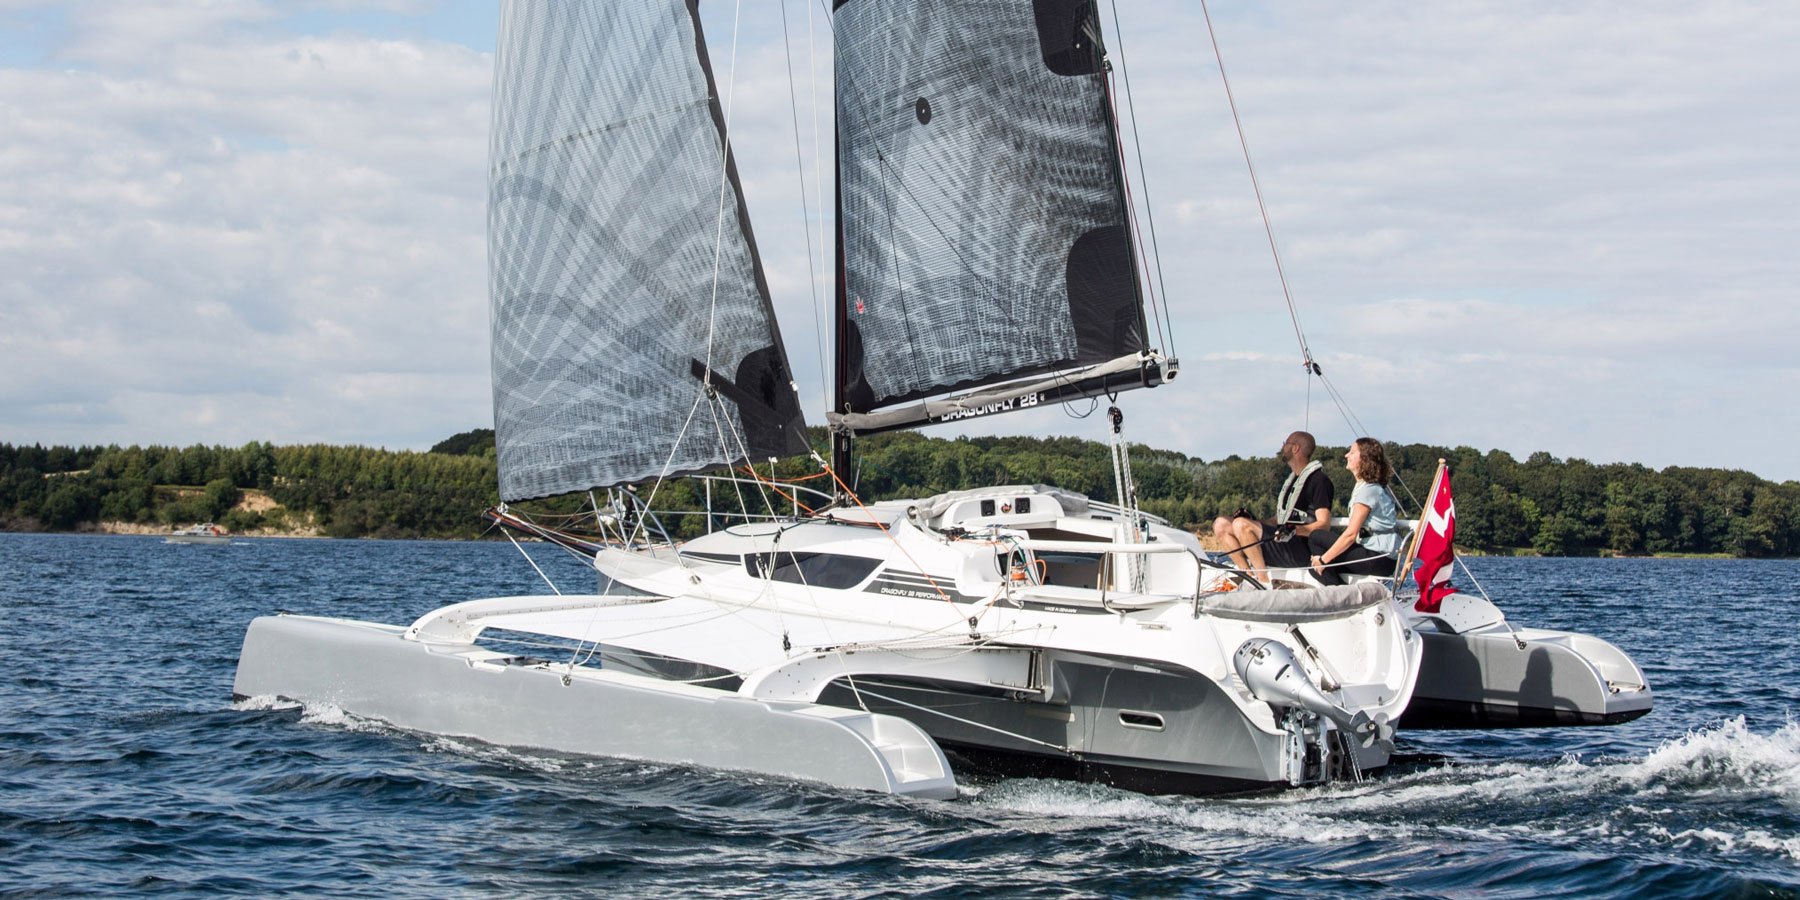 Dragonfly 28 trimaran aft view